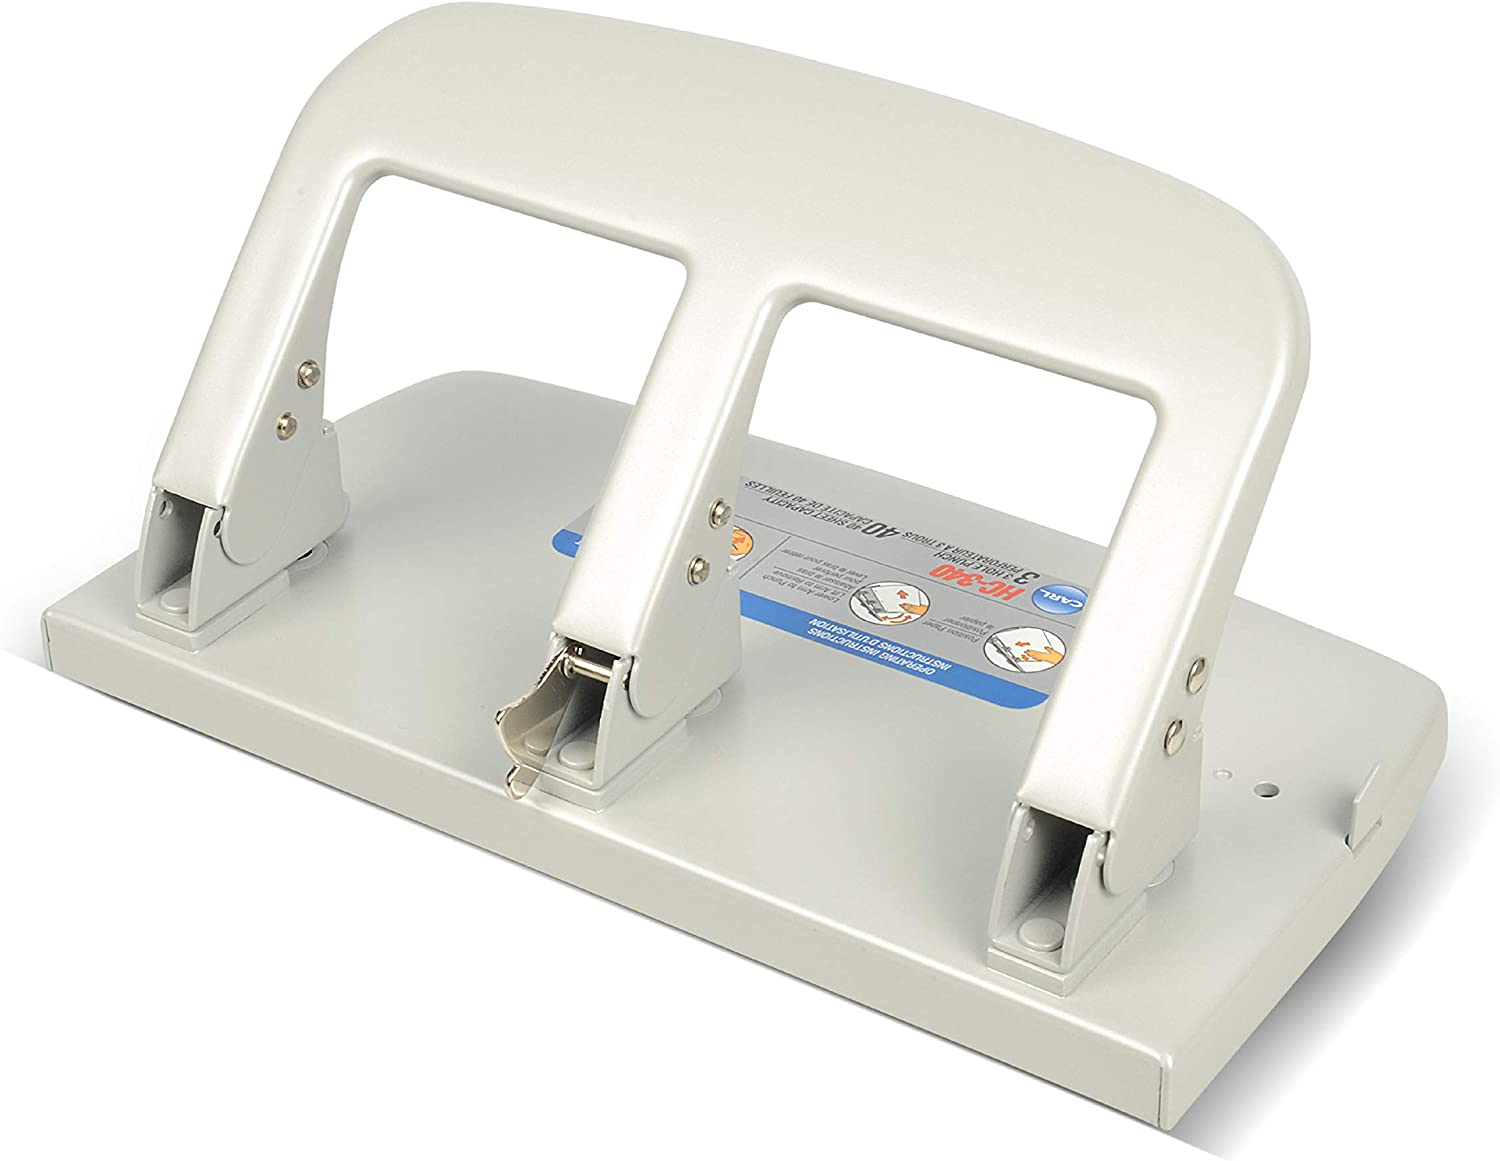 CARL, Medium-Duty 3 Hole Paper Punch, 40 Sheet Punch Capacity, Metallic, Model:HC-340 : Paper Punches : Office Products